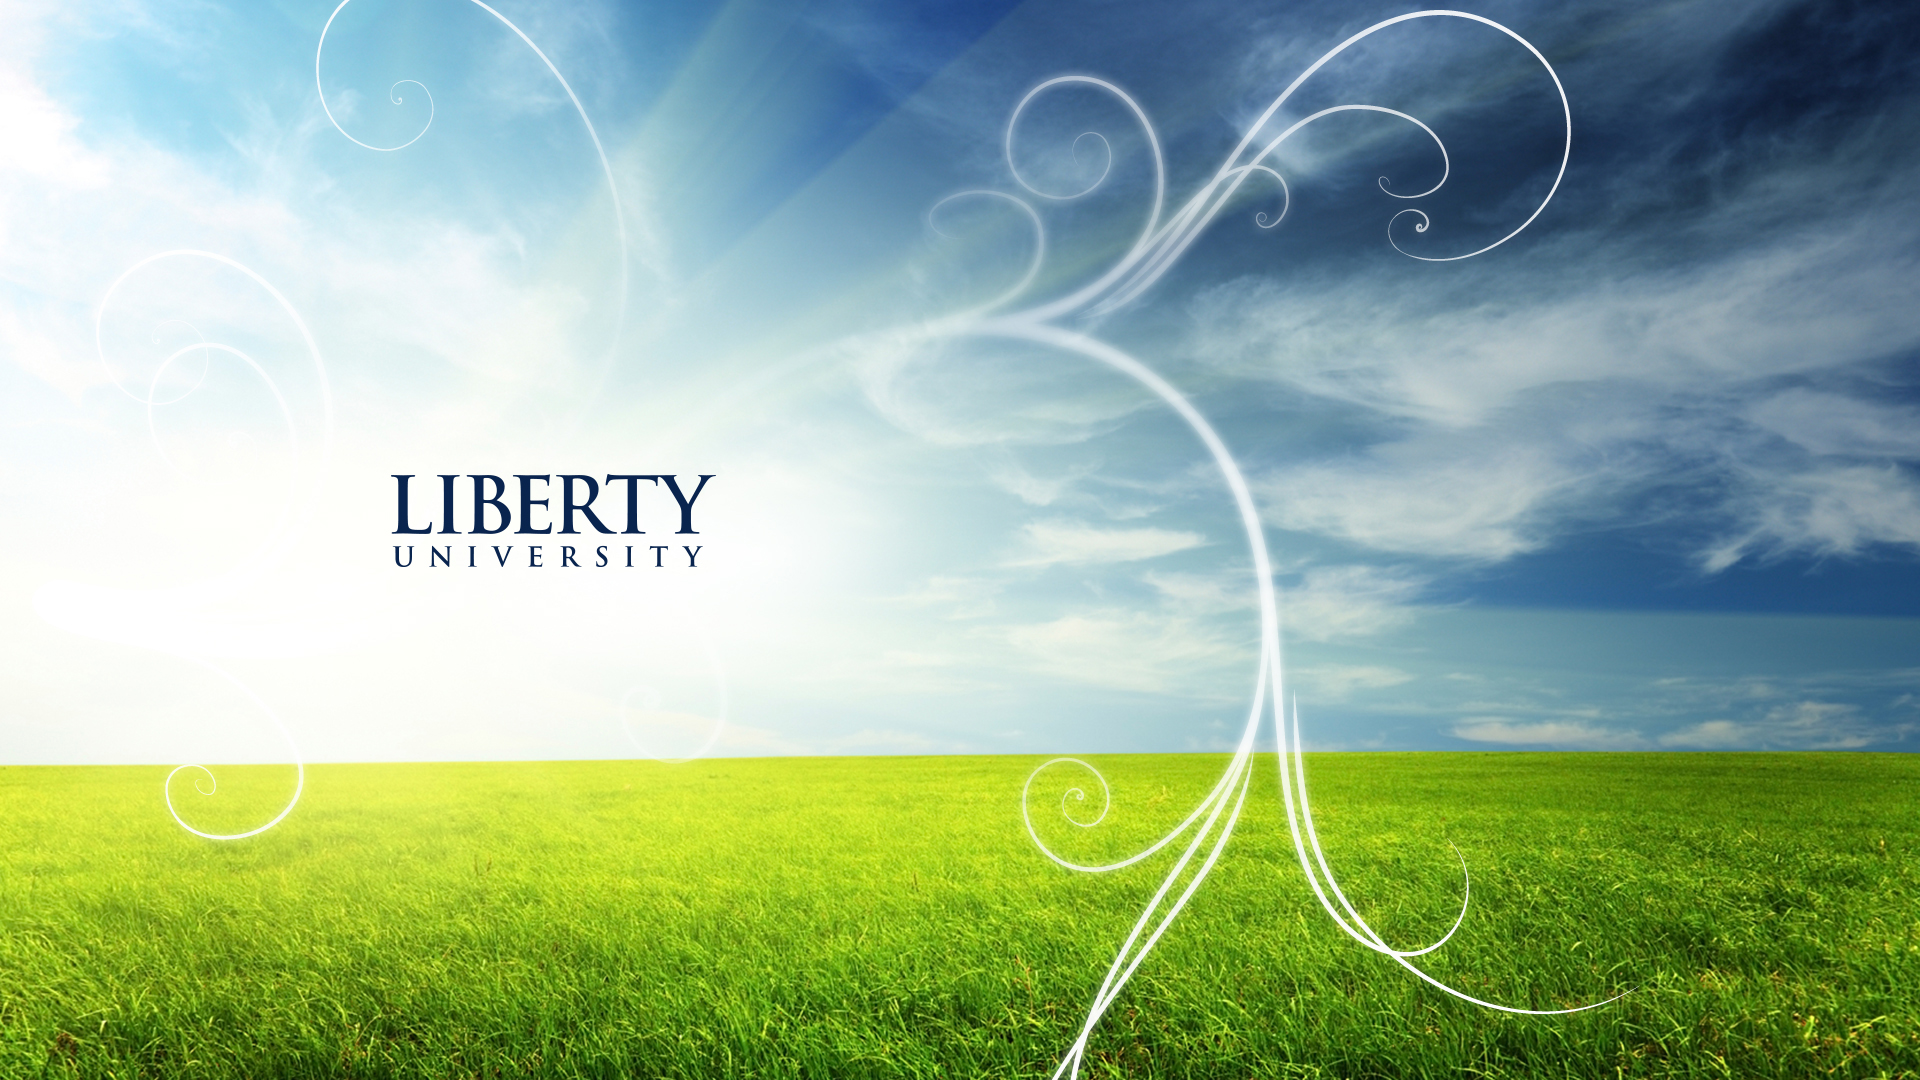 background images | marketing department | liberty university, Modern powerpoint